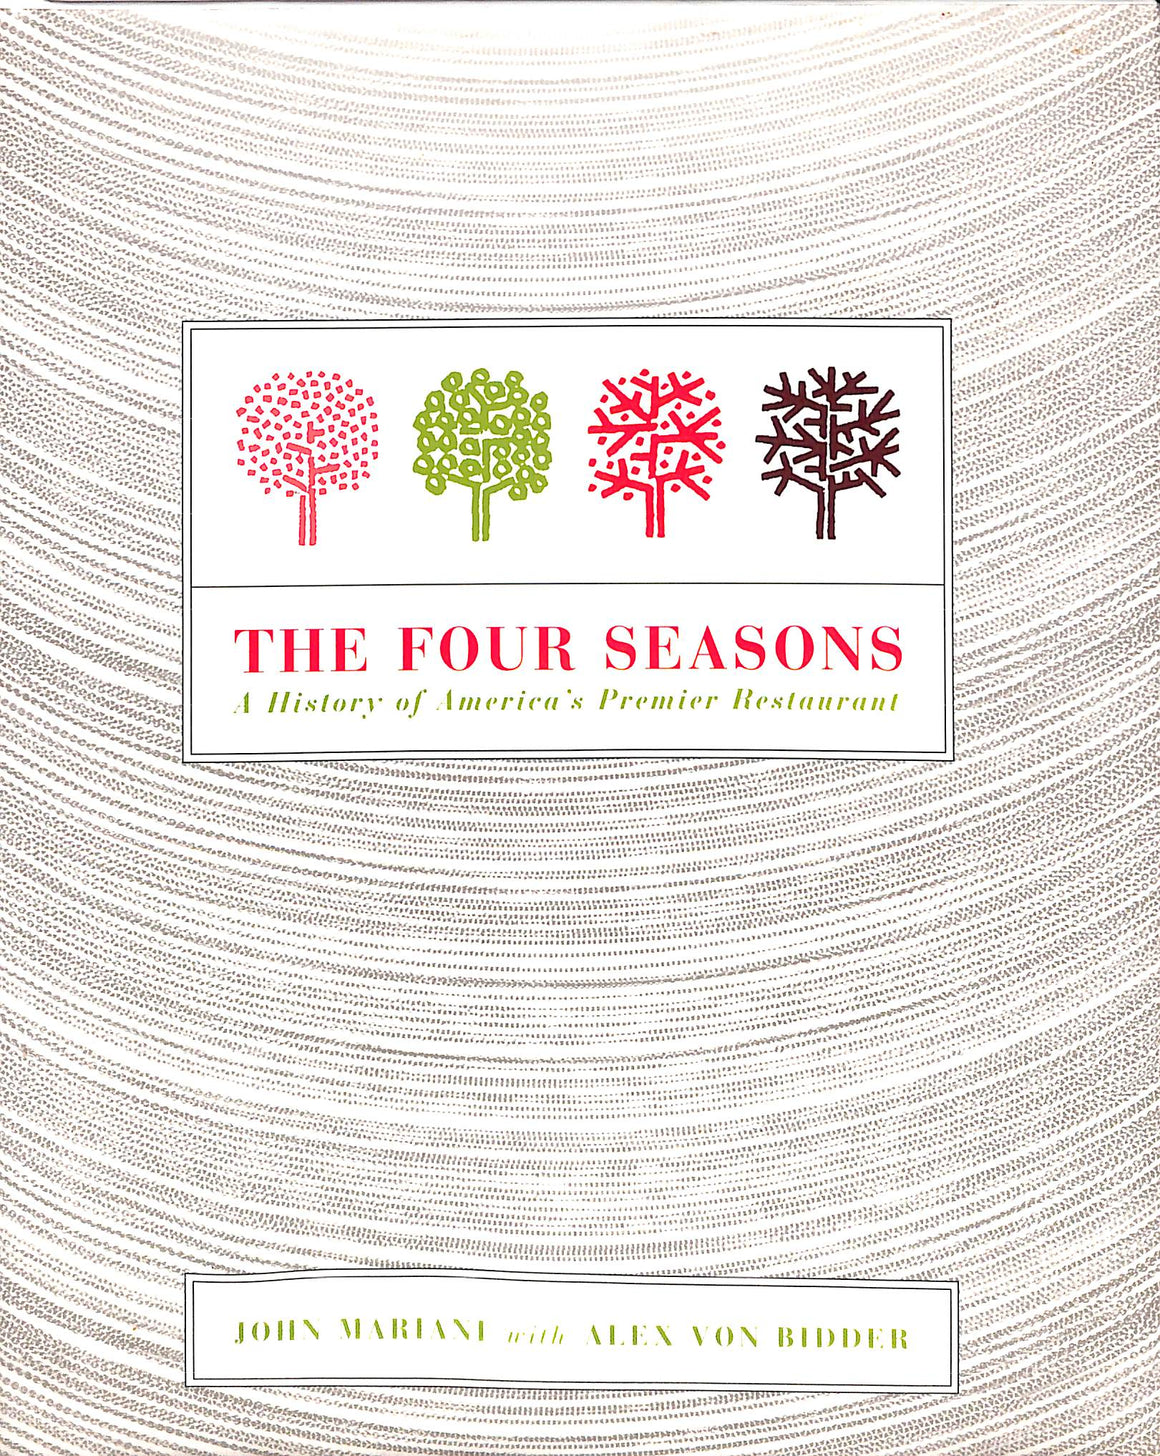 The Four Seasons: A History of America's Premier Restaurant